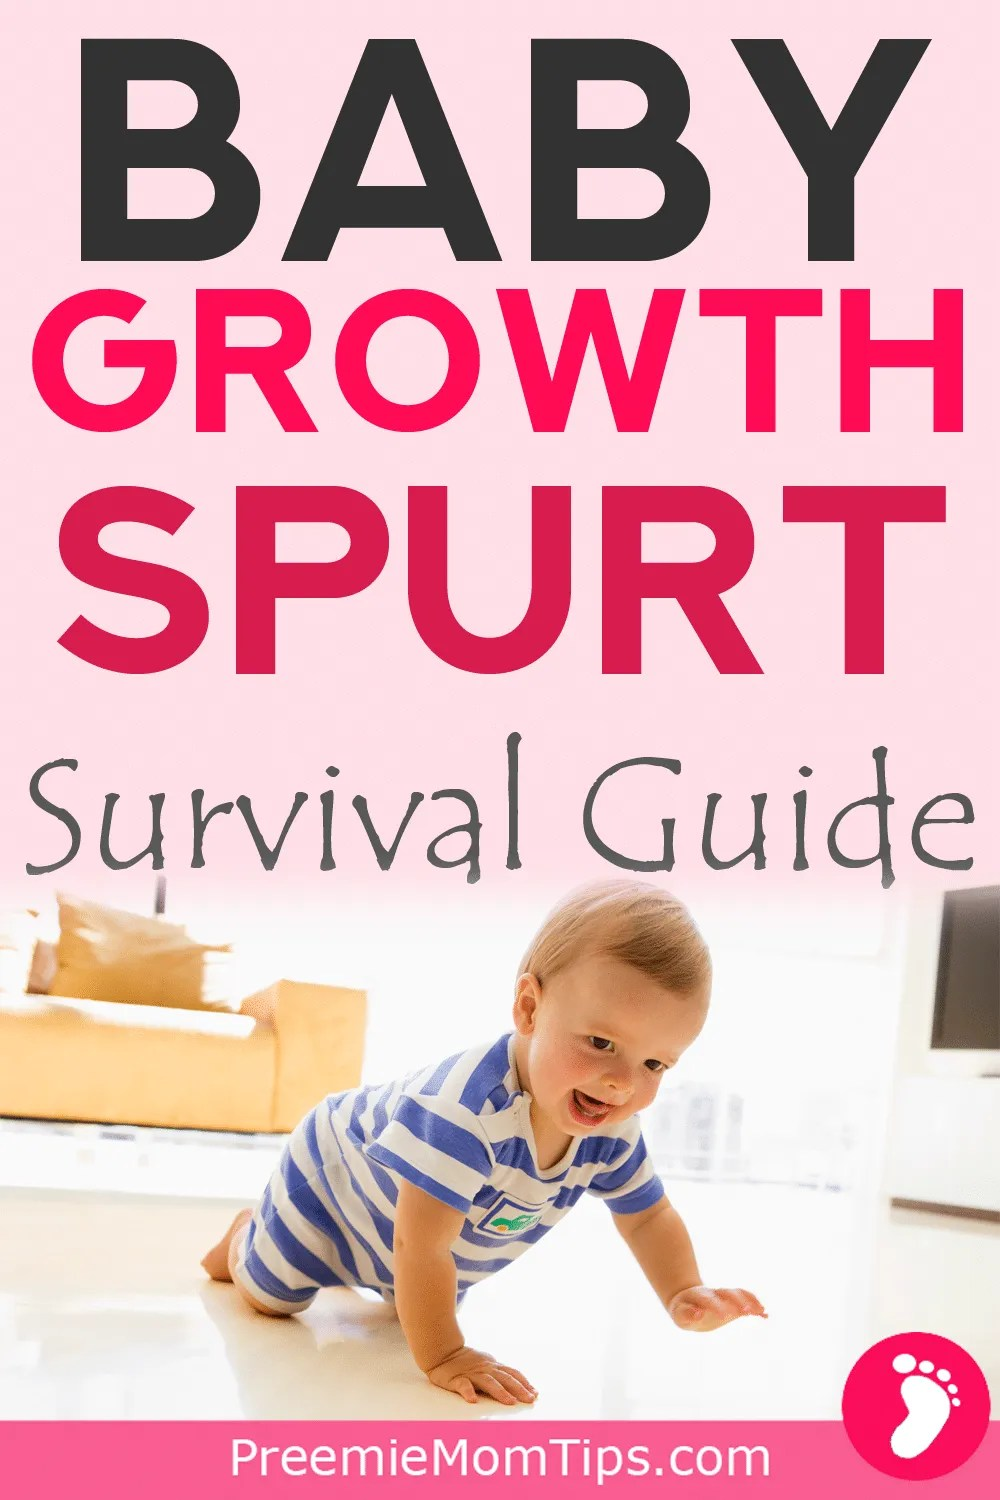 Here's everything you need to know about handling your baby's growth spurts as new parents!